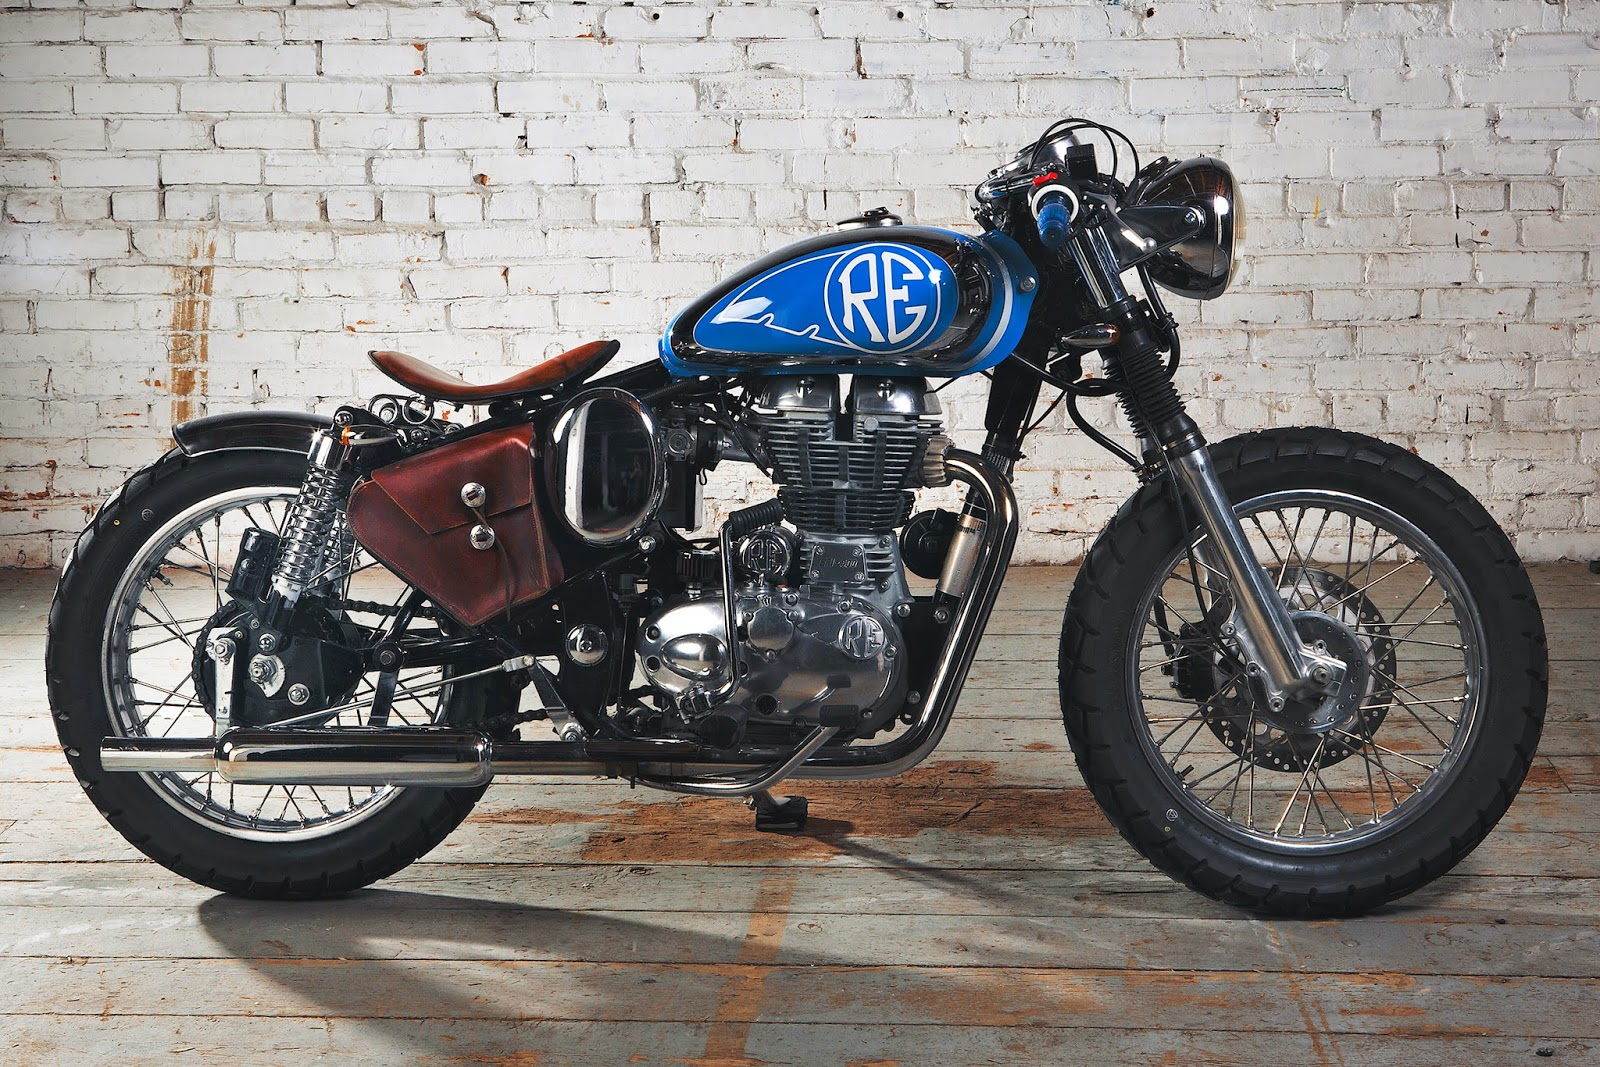 Royal Enfield Bullet 500 Classic 2011 images #124001